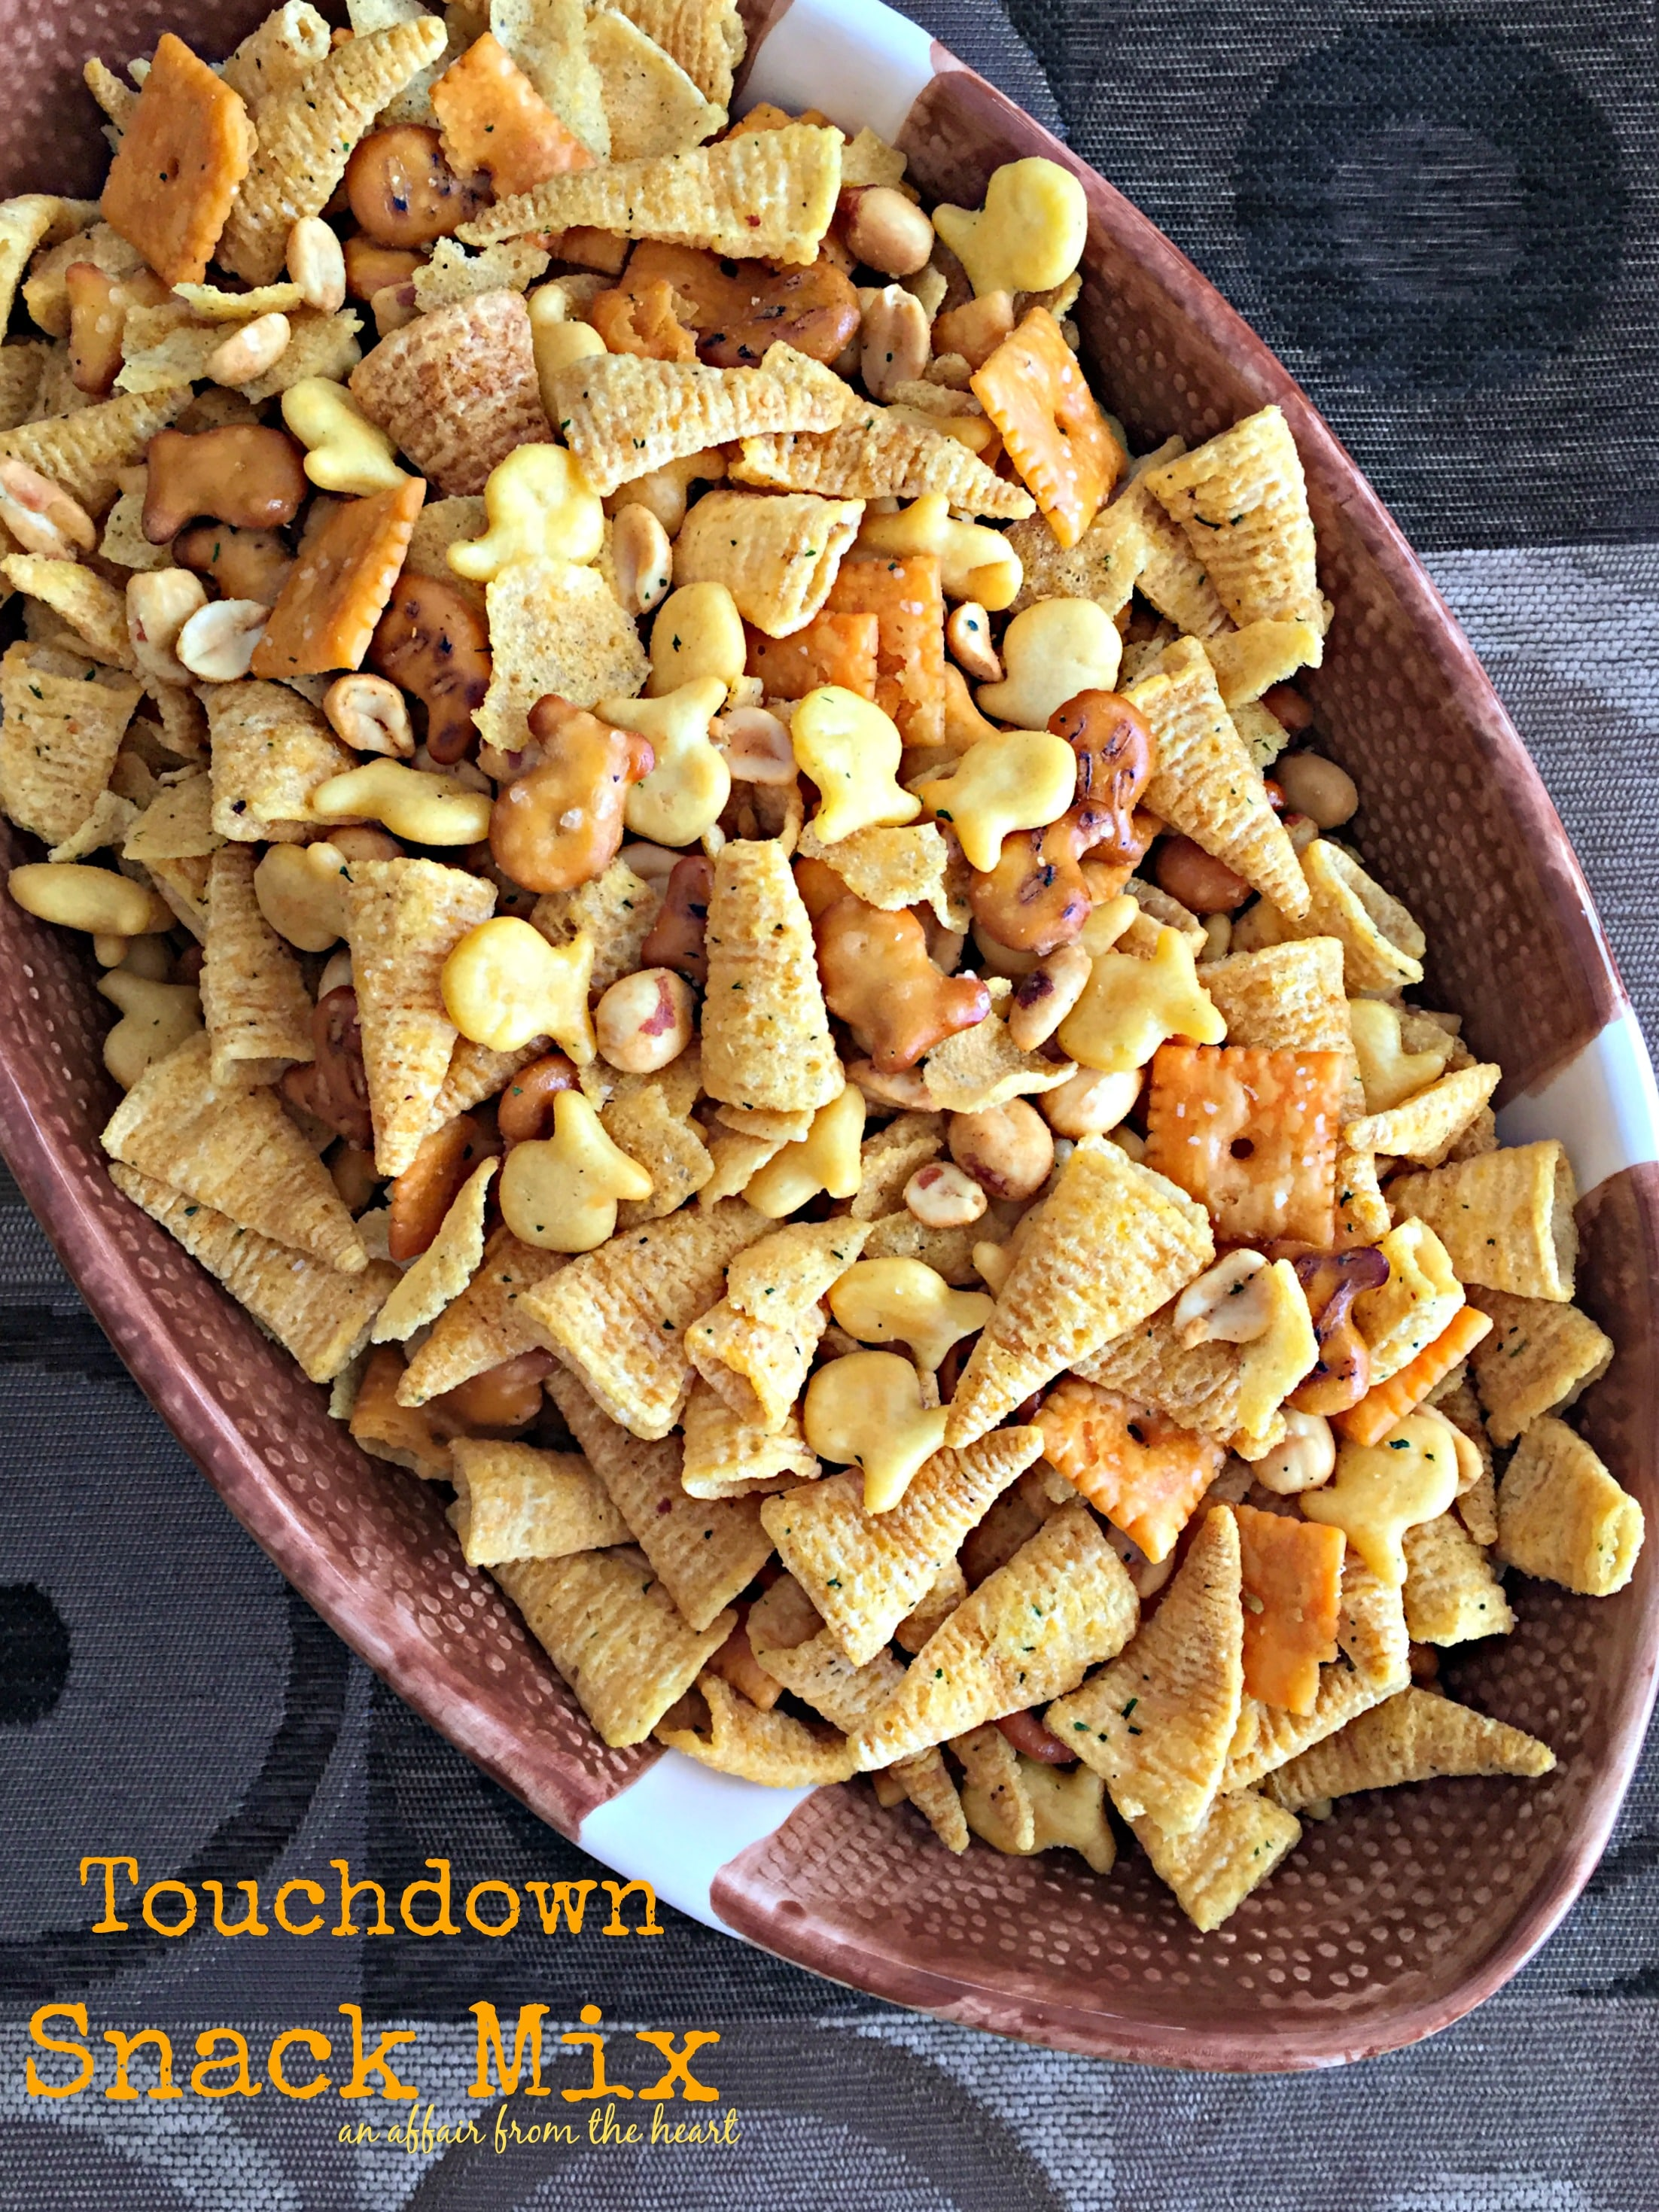 Touchdown Snack Mix